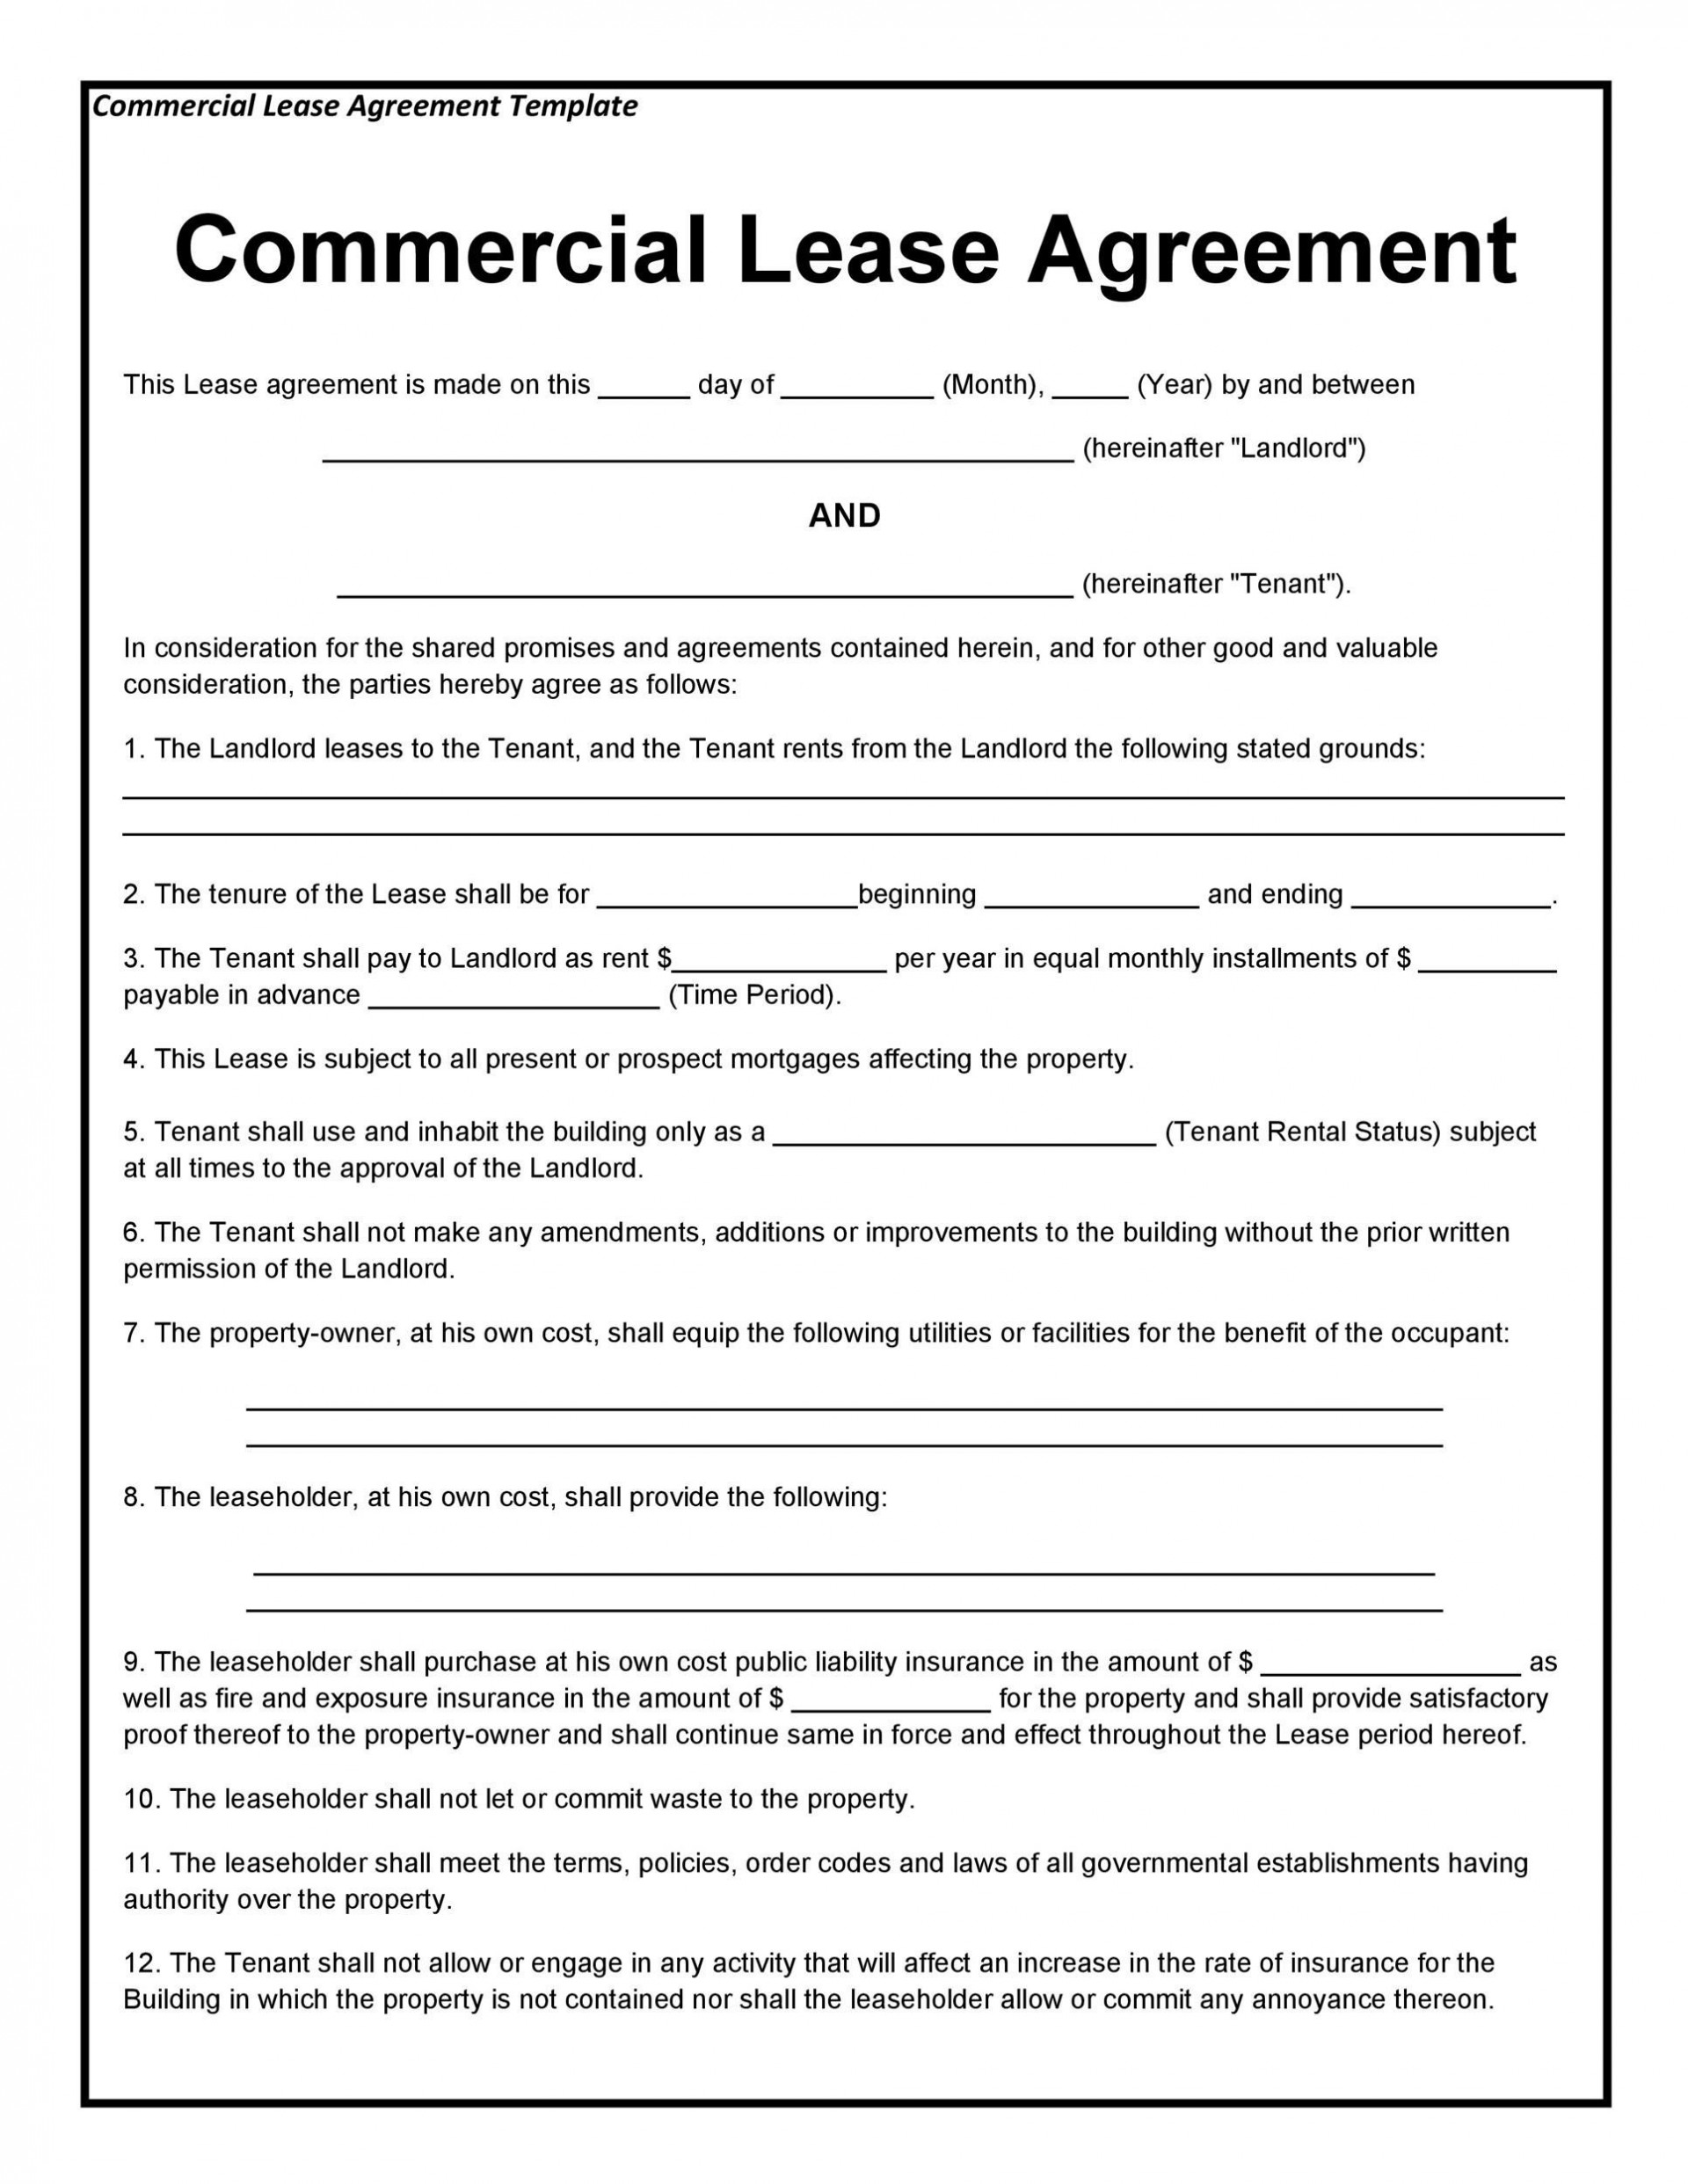 002 Shocking Free Lease Agreement Template Word Picture  Doc Residential Commercial Uk1920